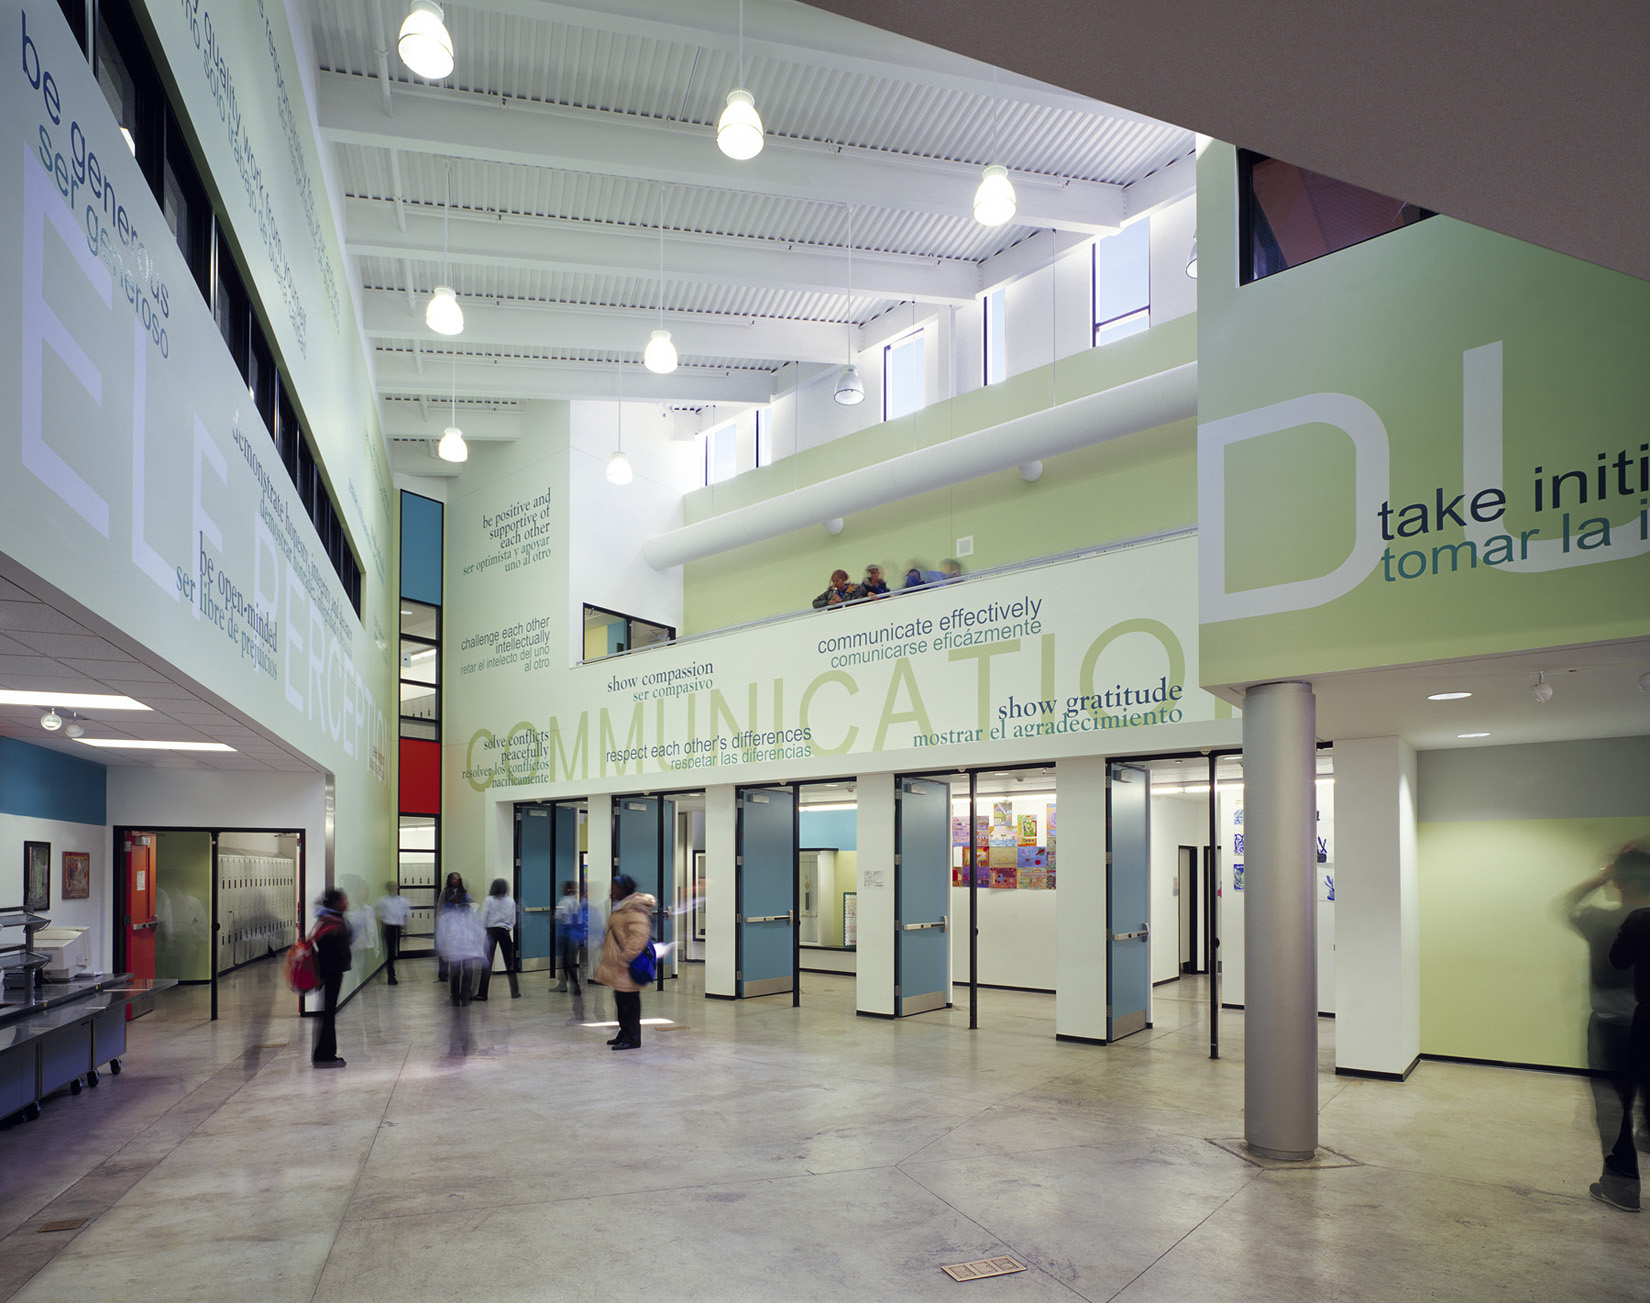 Perspectives charter school 2015 design excellence - Interior design school nashville ...